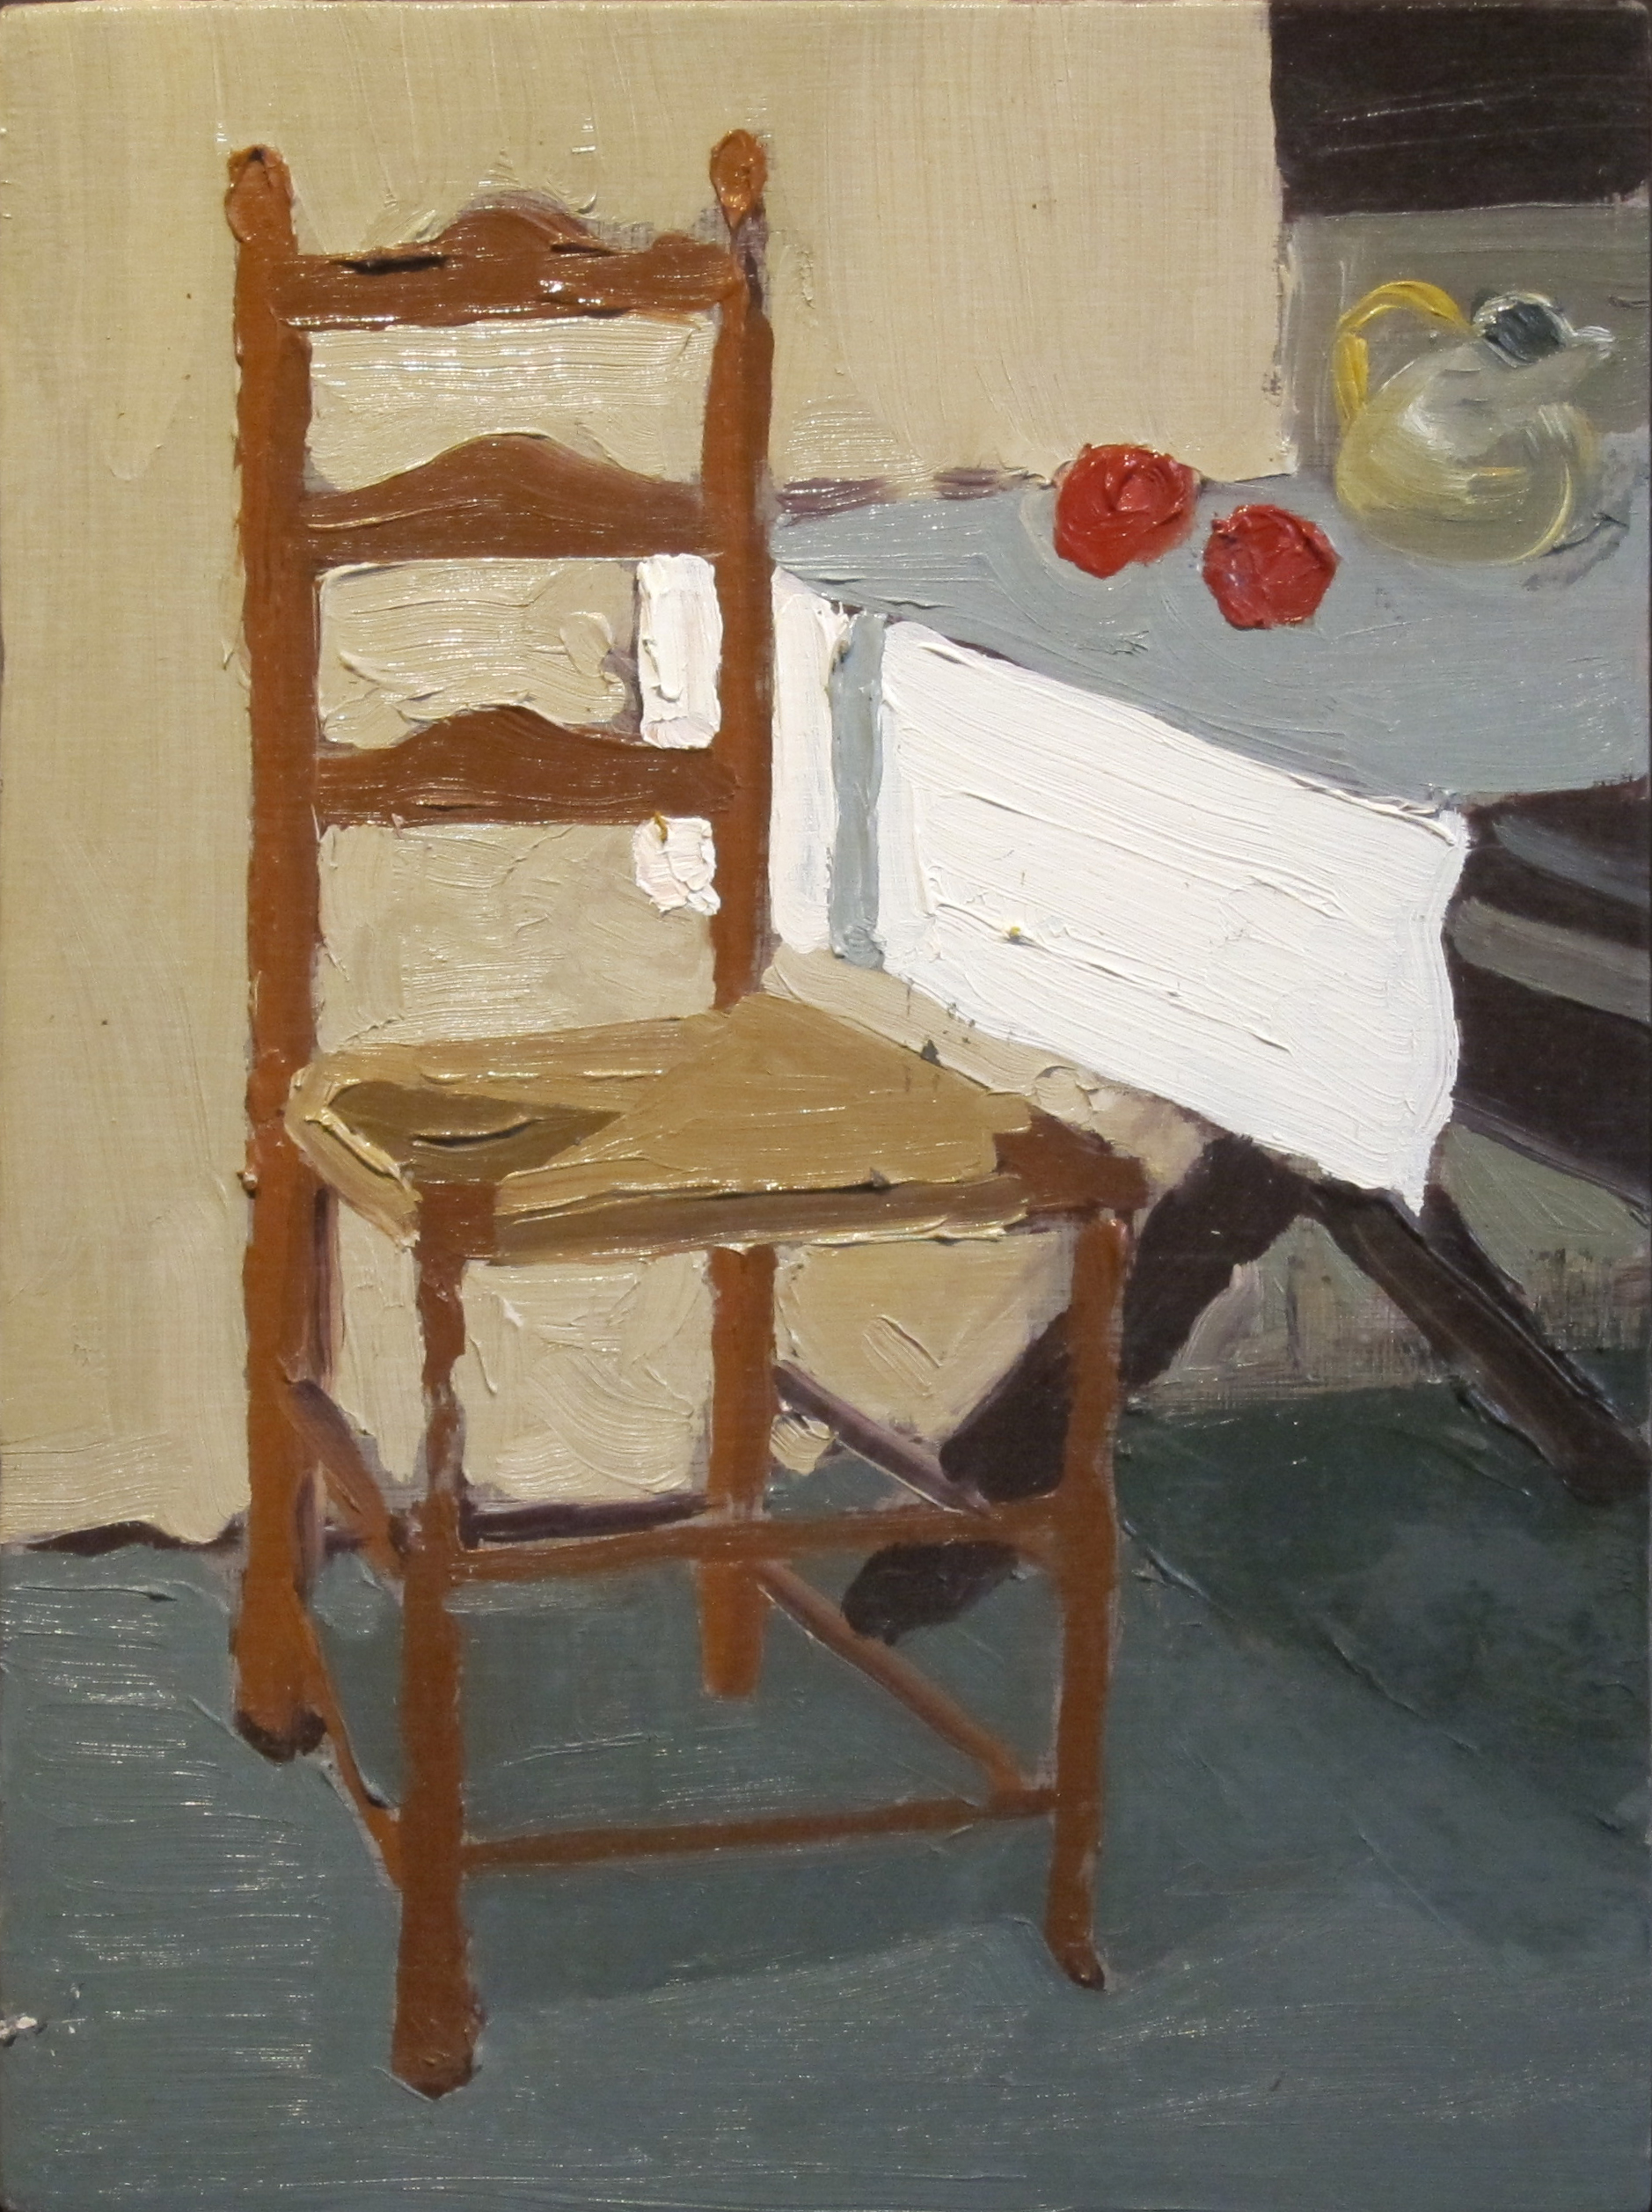 Chair with two tomatoes